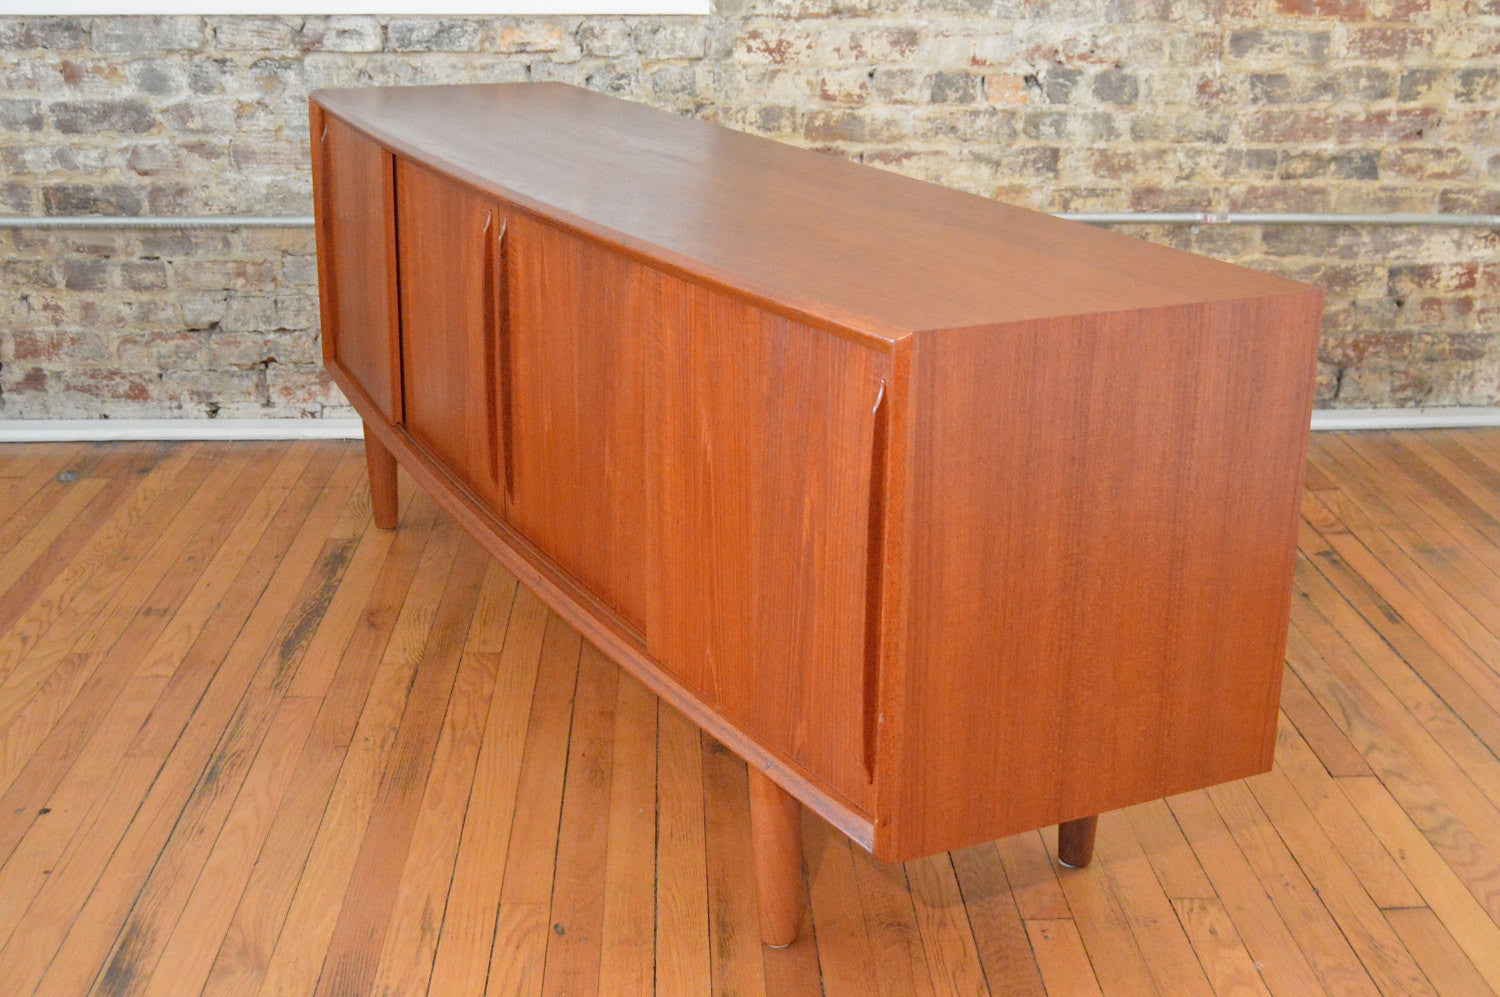 Danish Sideboard Credenza : Dining room low mid century credenza vintage danish sideboard